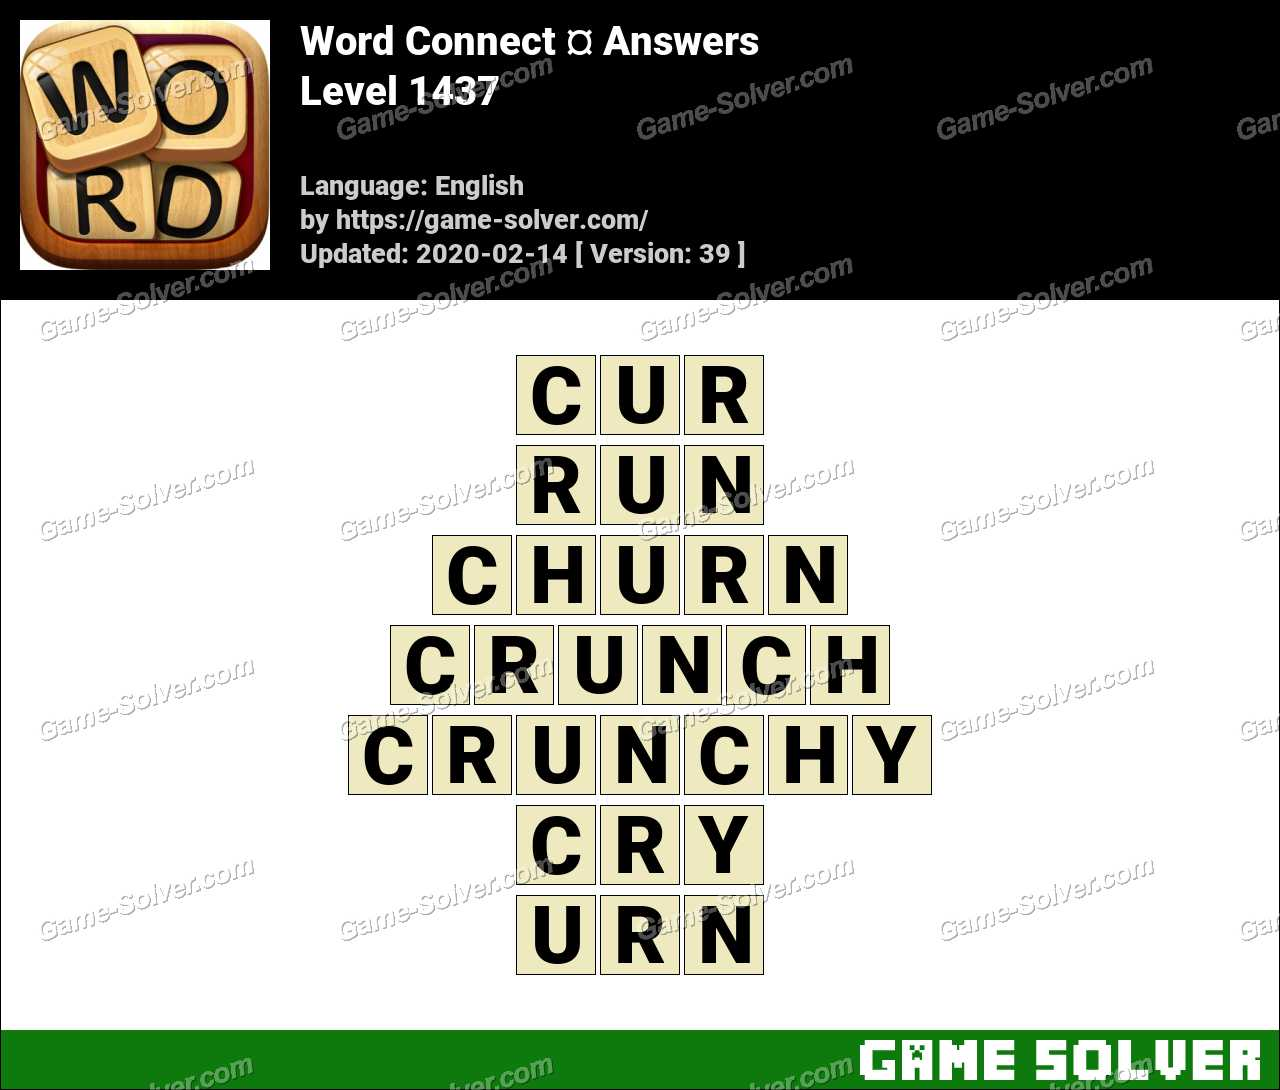 Word Connect Level 1437 Answers